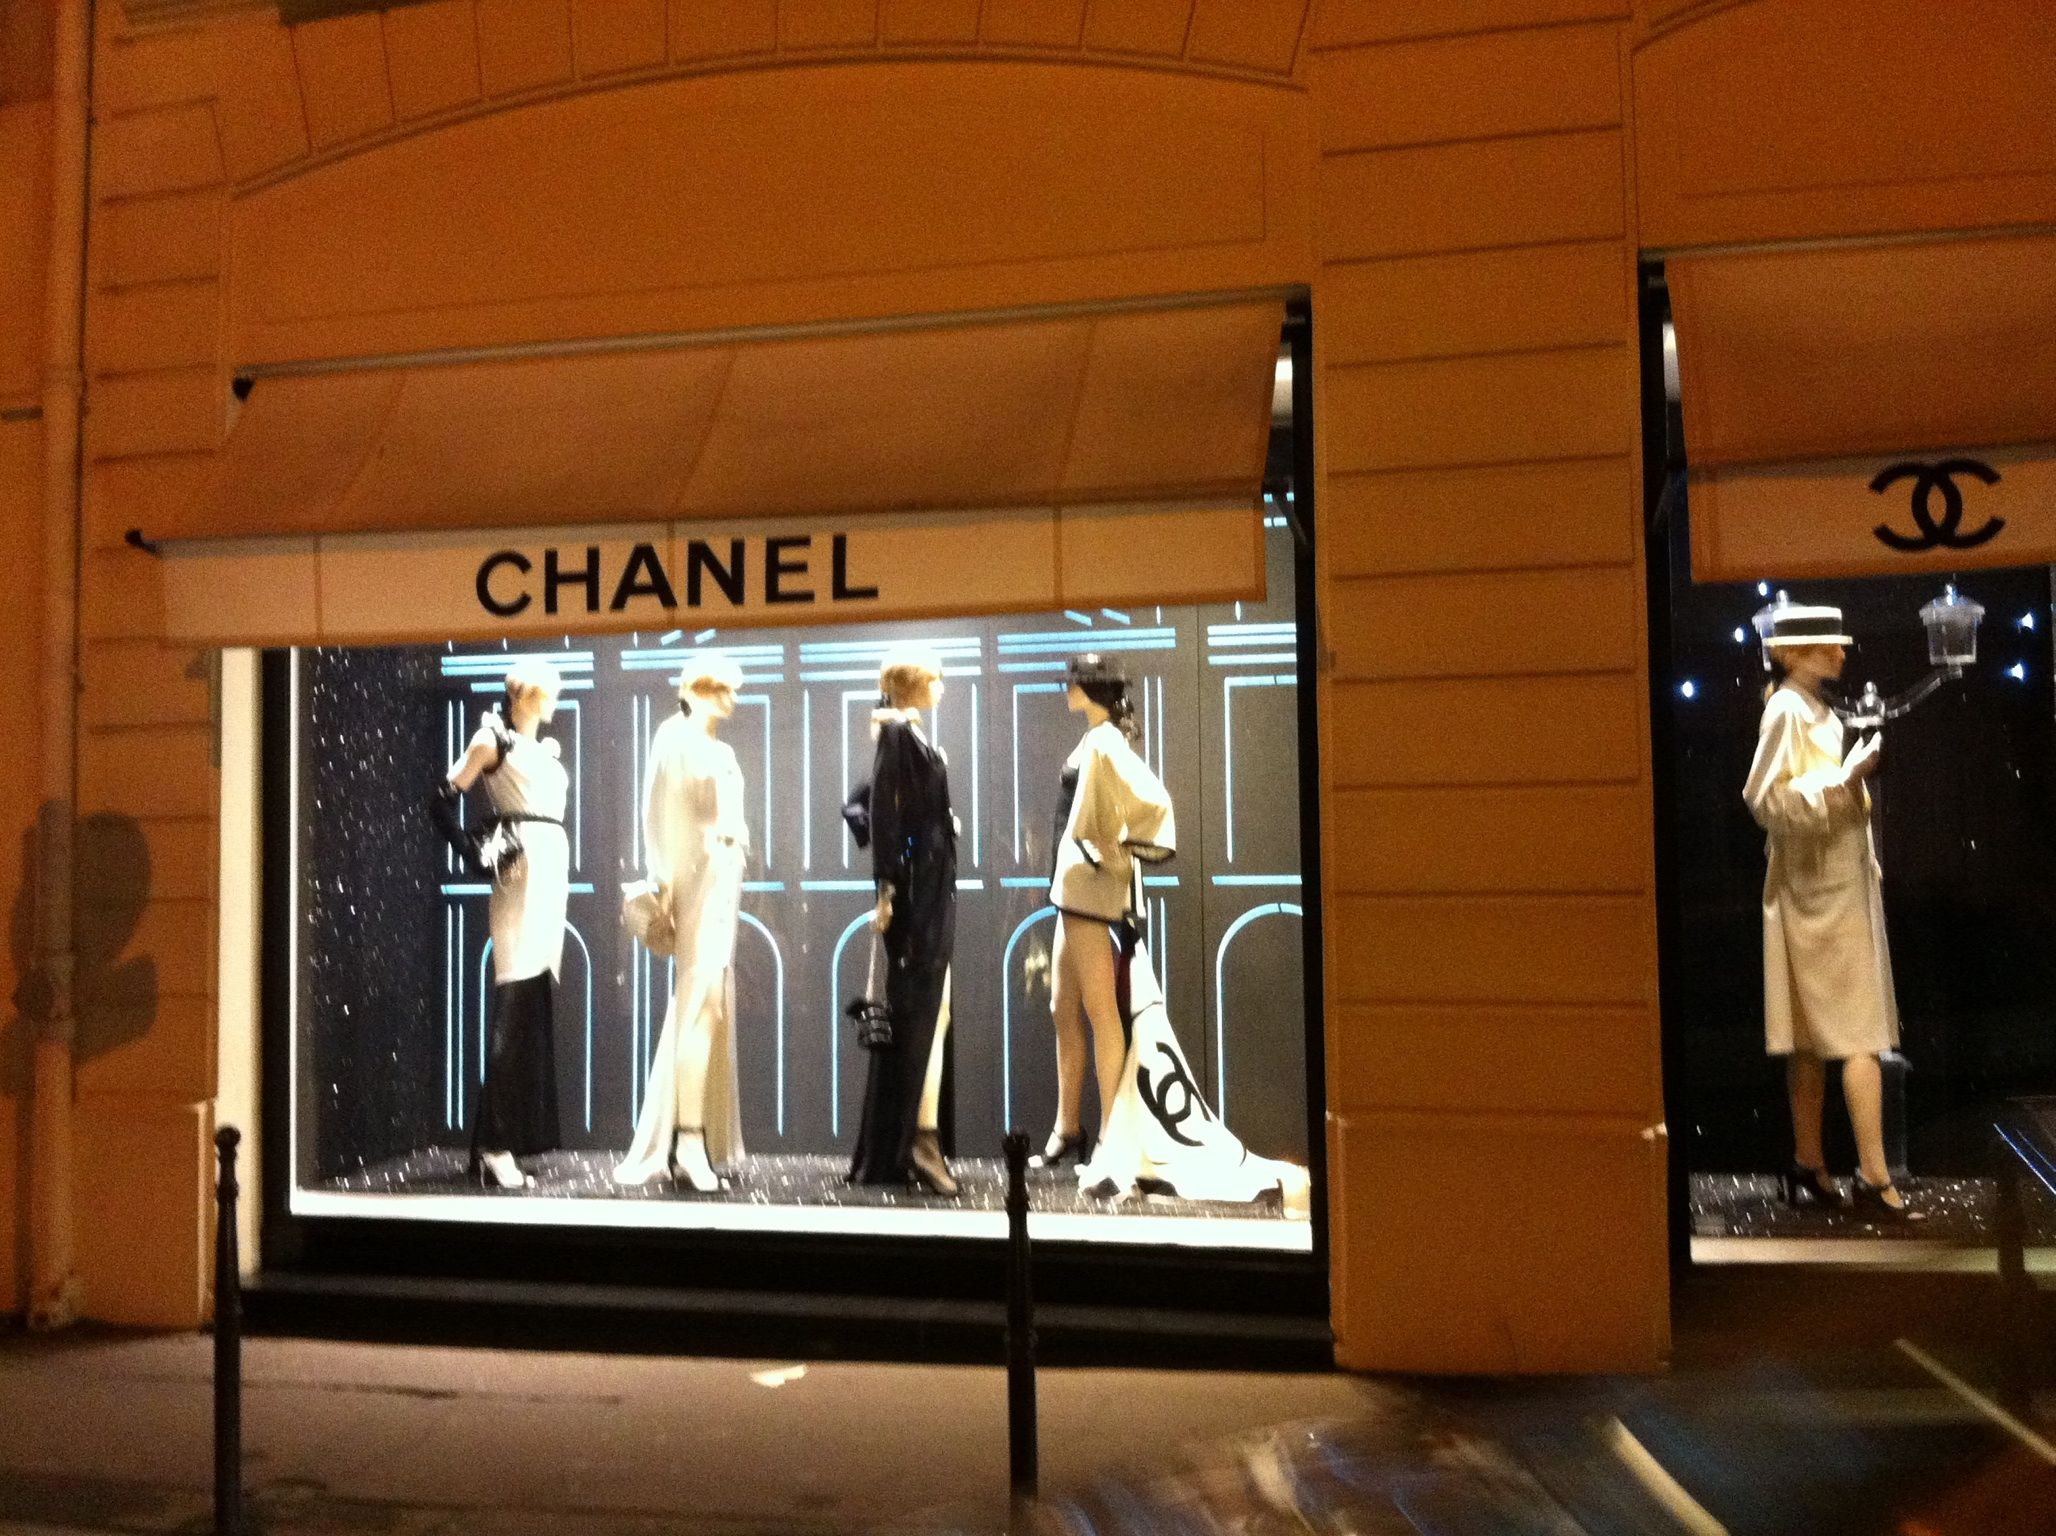 Chanel by night. Robin Romans Chanel, Paris, Chanel paris